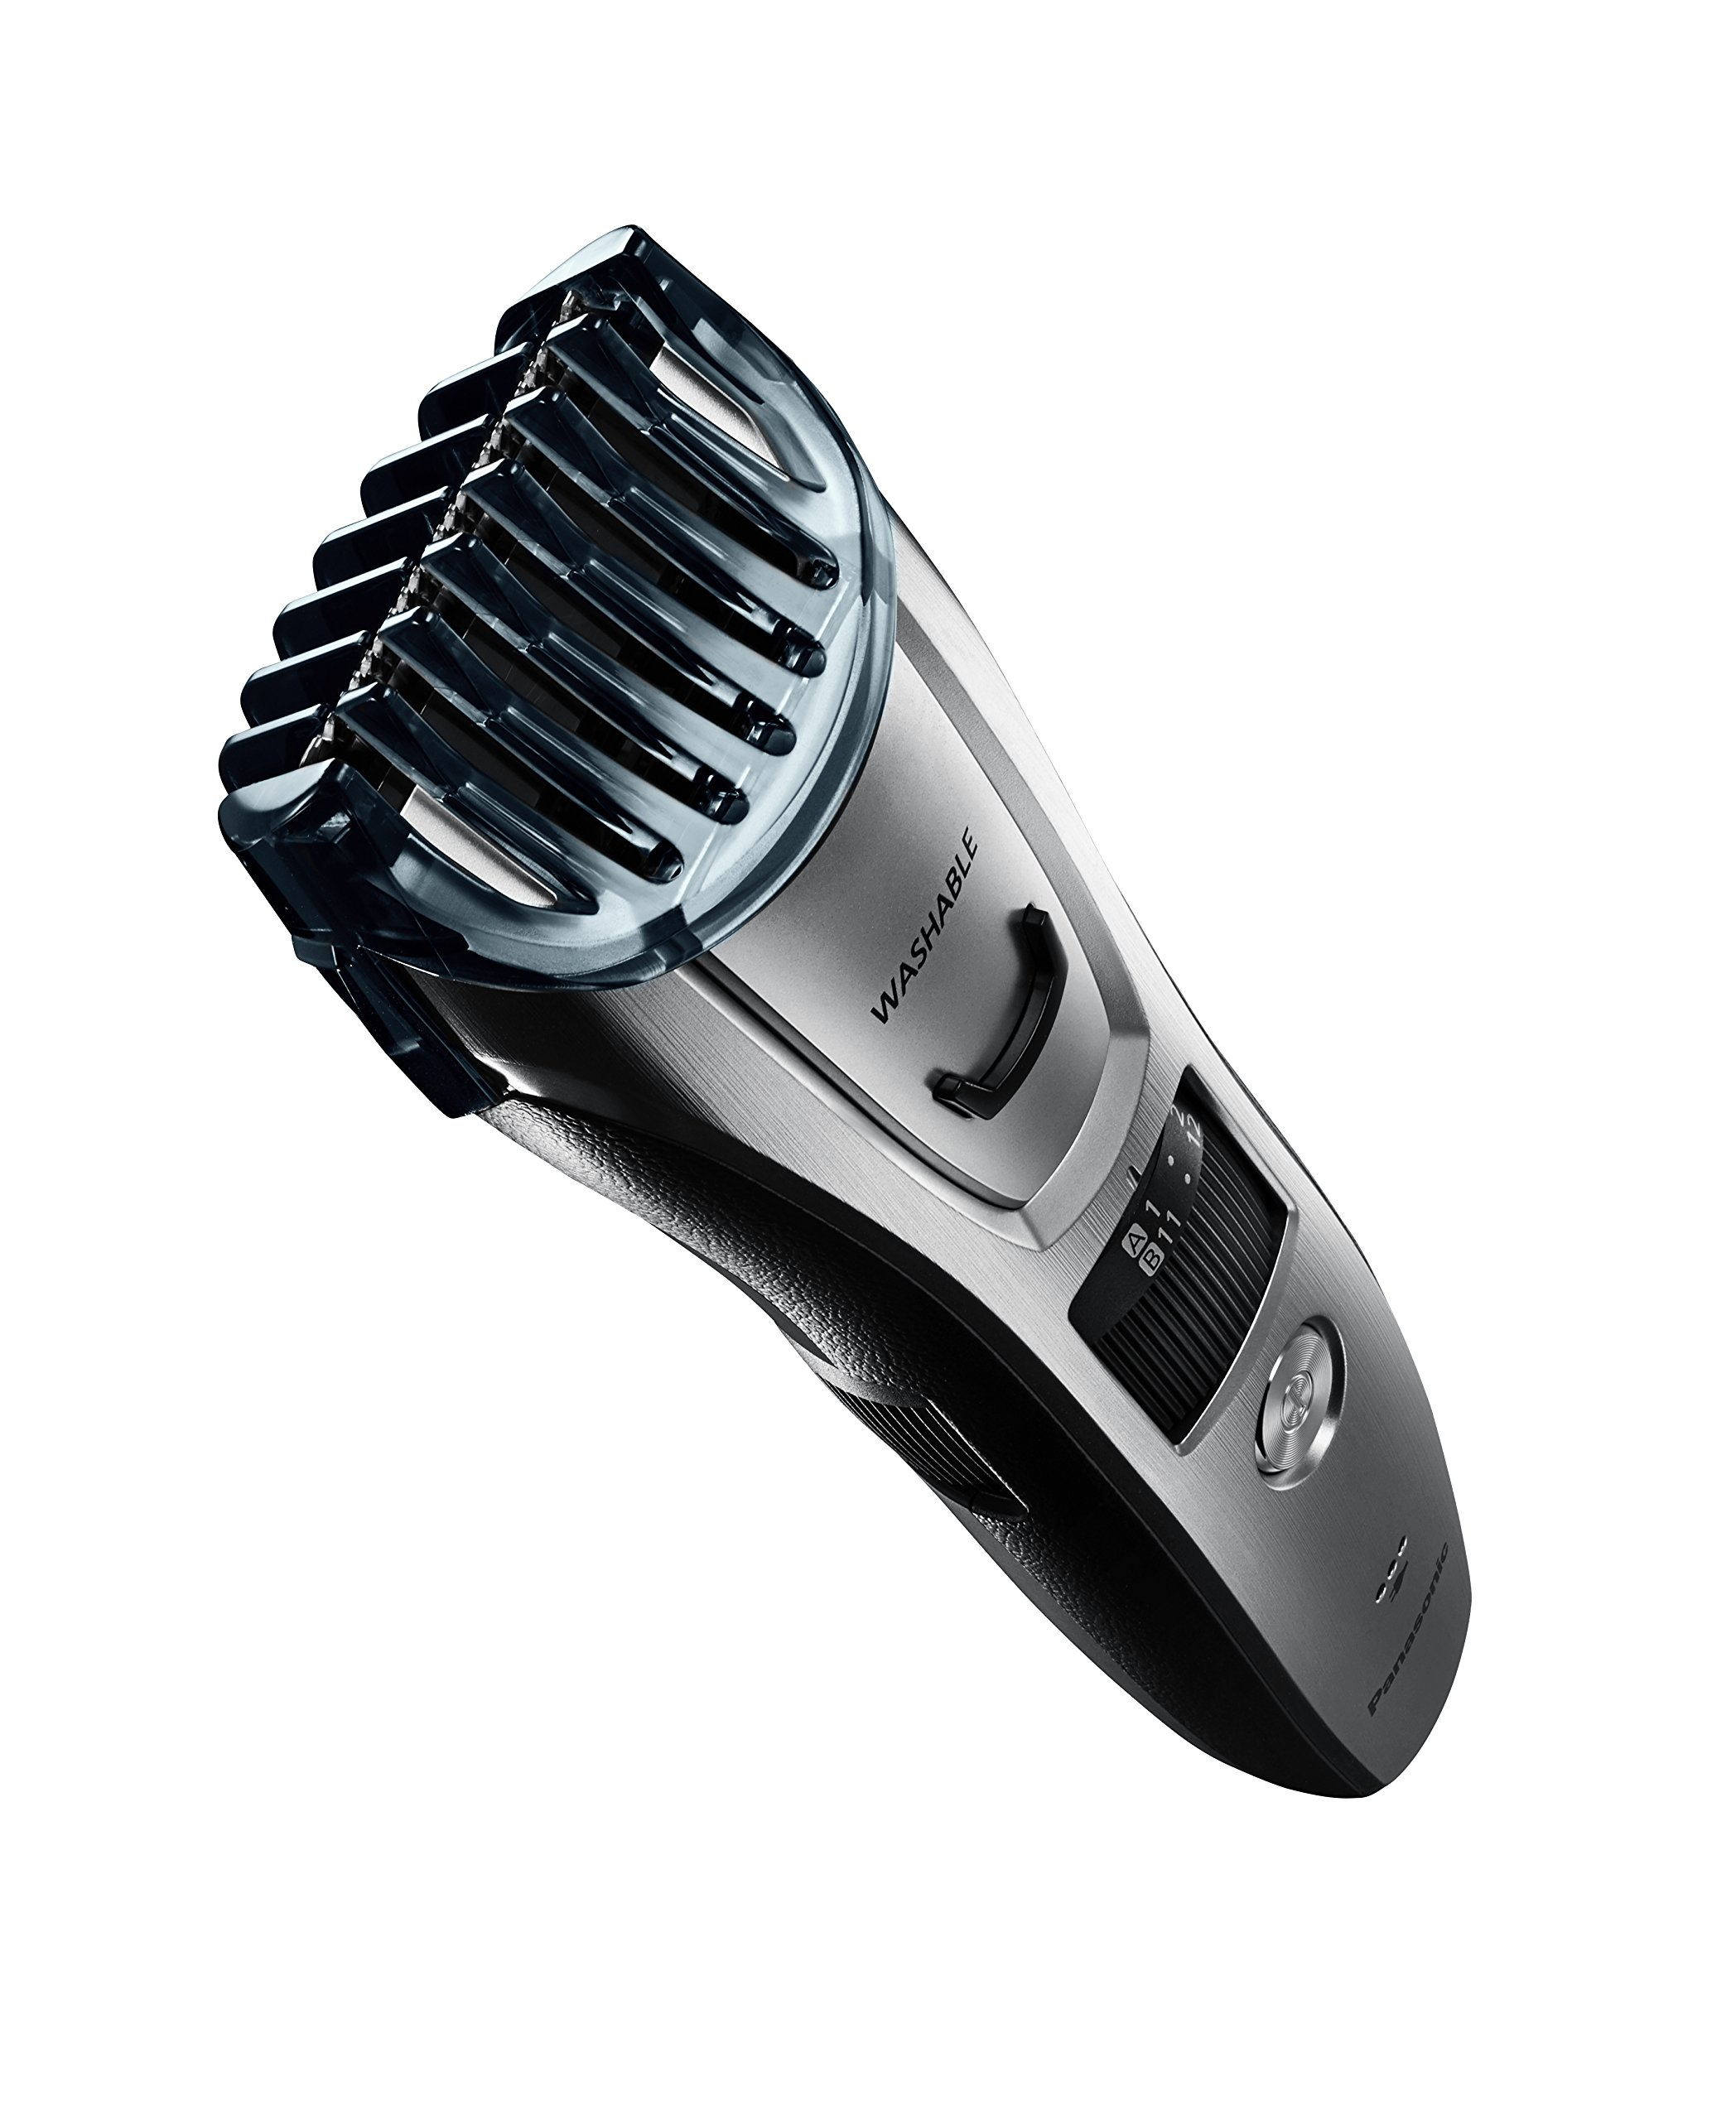 Panasonic ER-GB80-S Body and Beard Trimmer, Hair Clipper, Men's, Cordless/Corded Operation with 3 Comb Attachments and 39 Adjustable Trim Settings, Washable by Panasonic (Image #8)